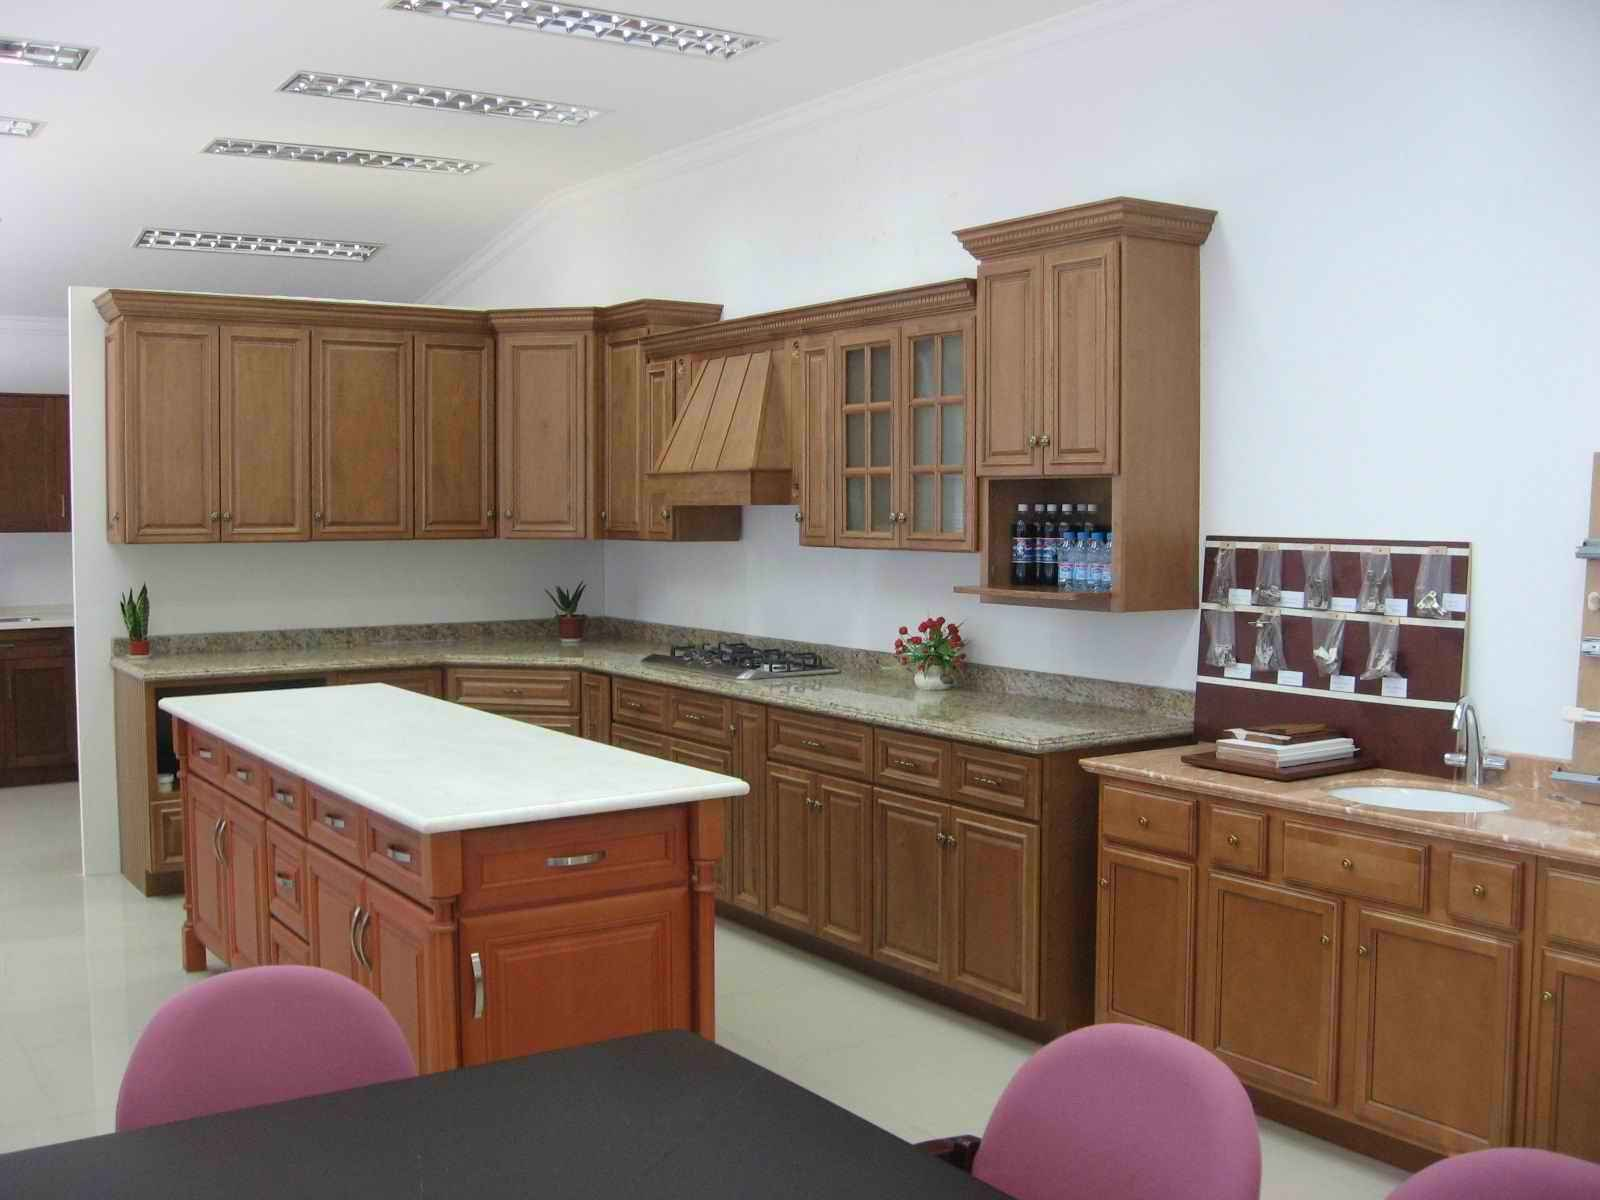 cheap cabinets for kitchens shopping tips ForCheap Wood Kitchen Cabinets